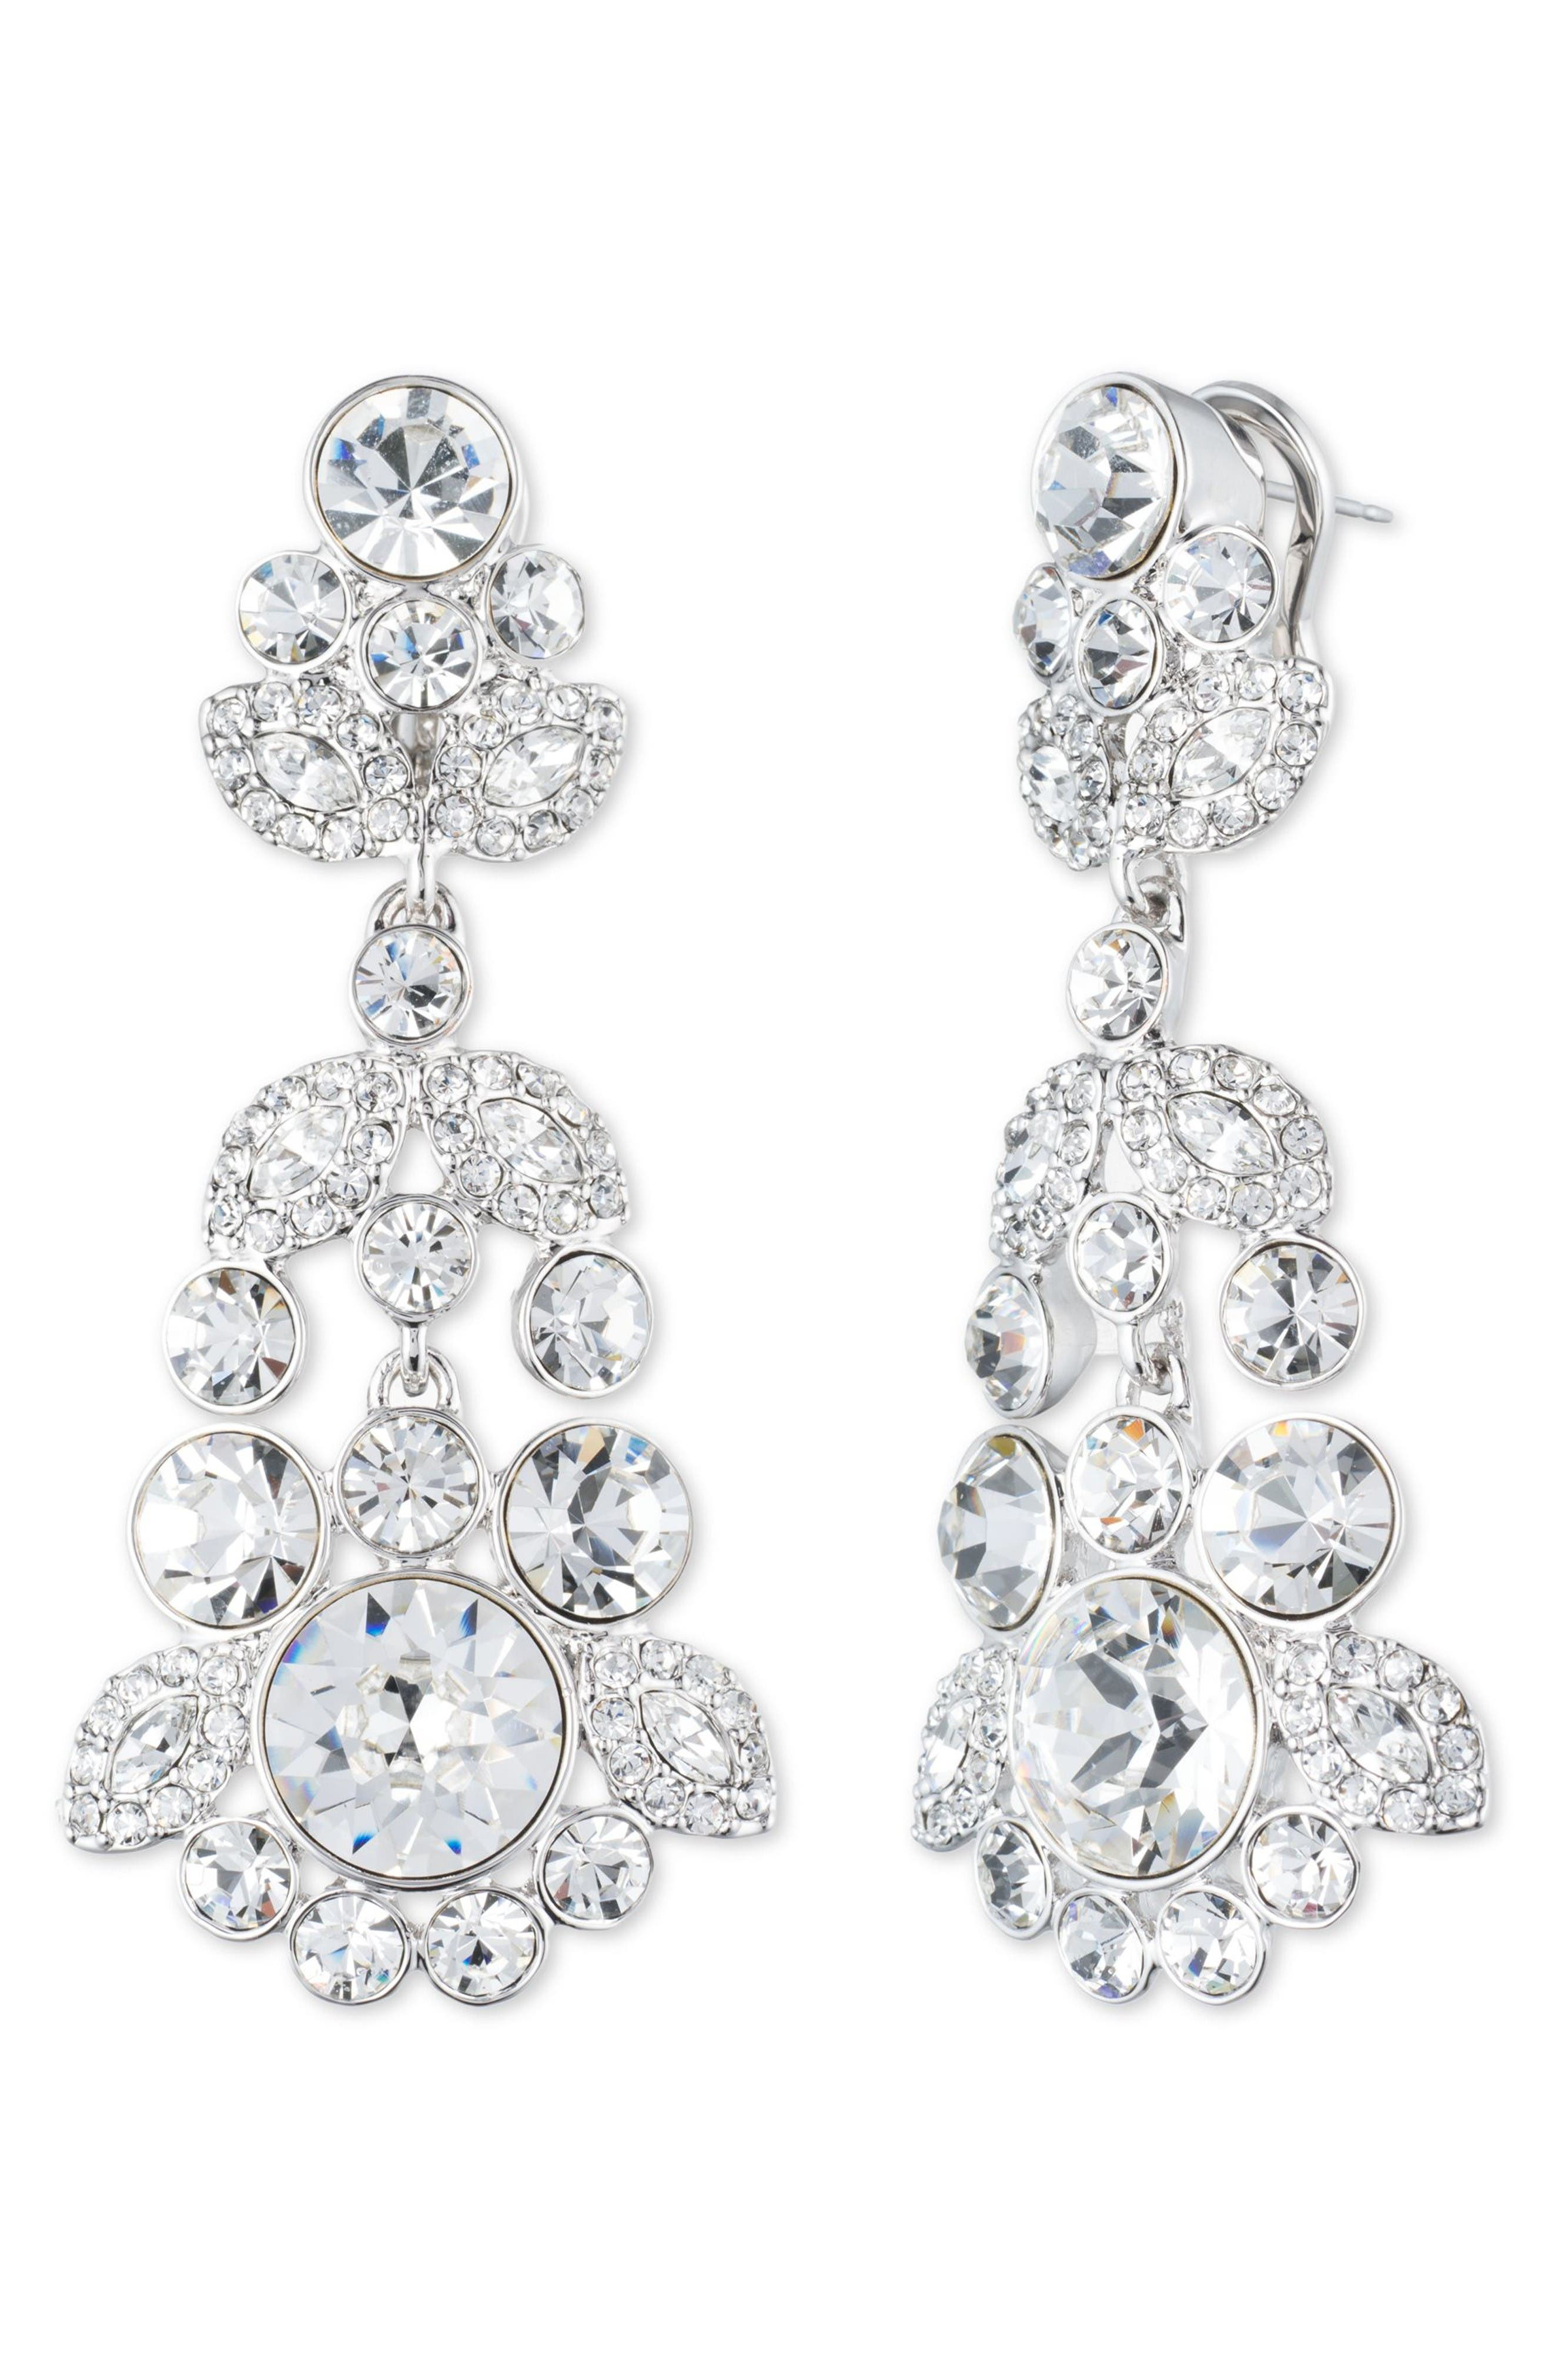 Main Image - Givenchy Crystal Chandelier Earrings